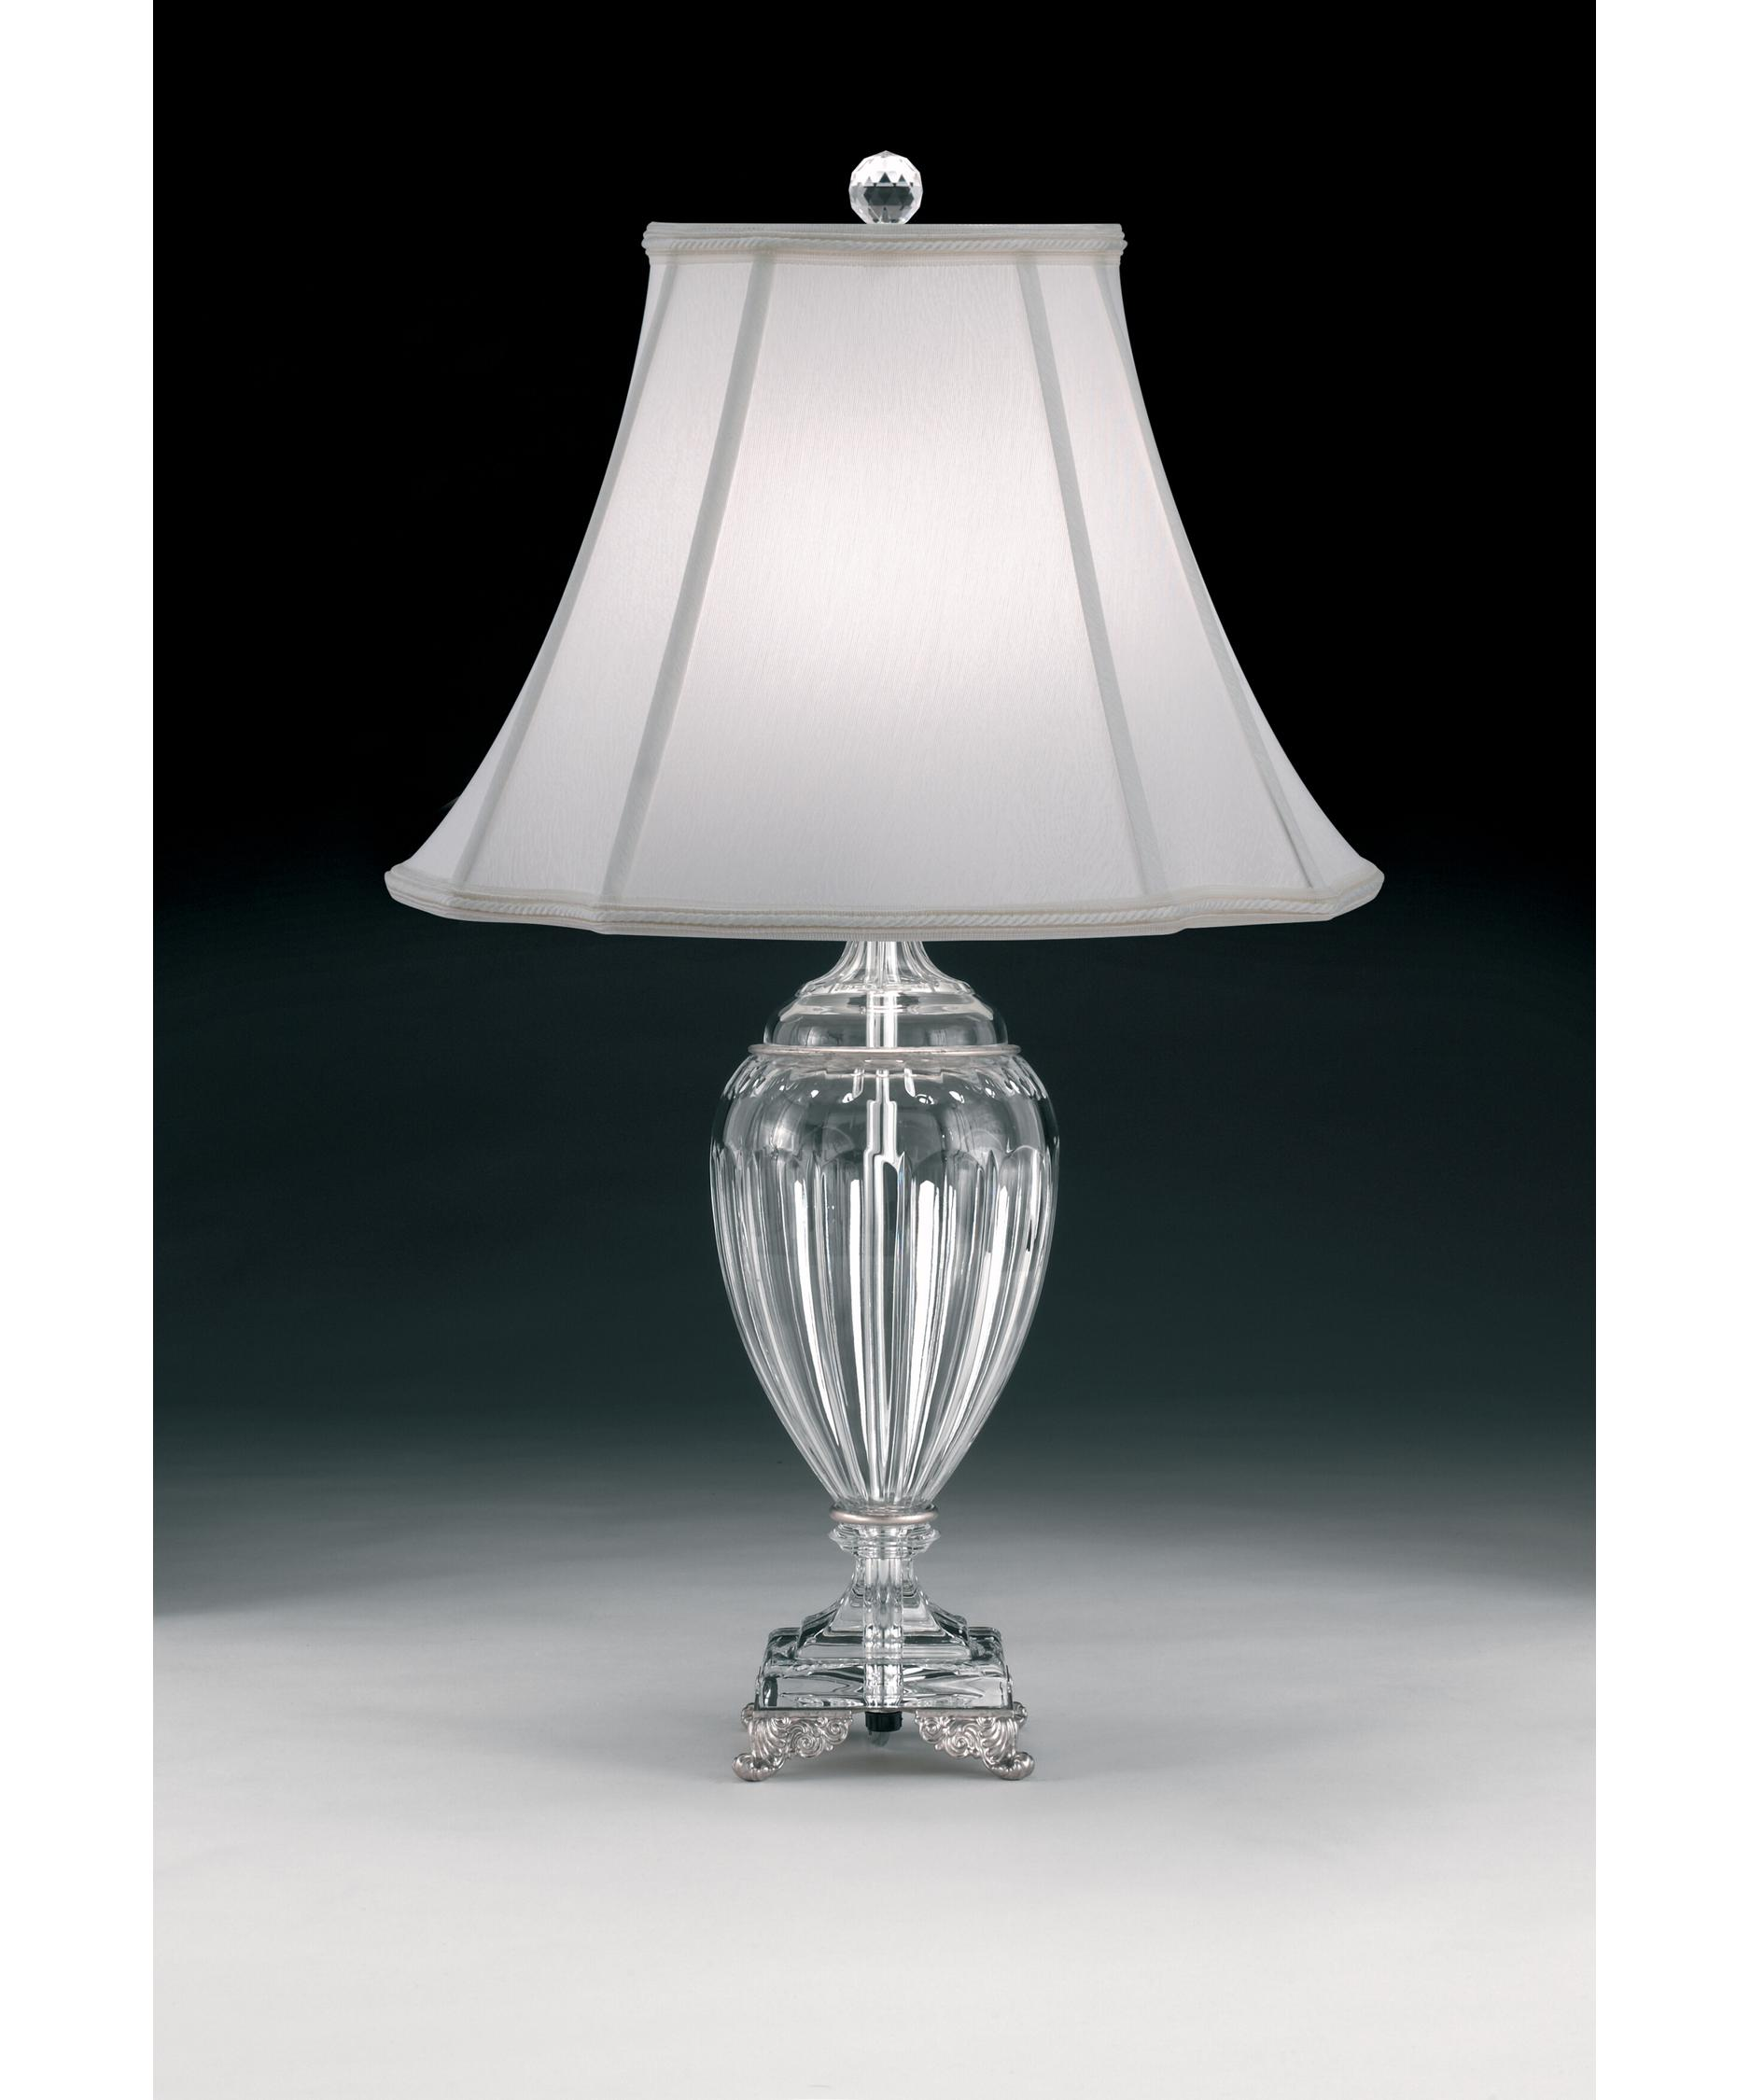 schonbek princessa 24 inch high table lamp capitol lighting - Schonbek Lighting